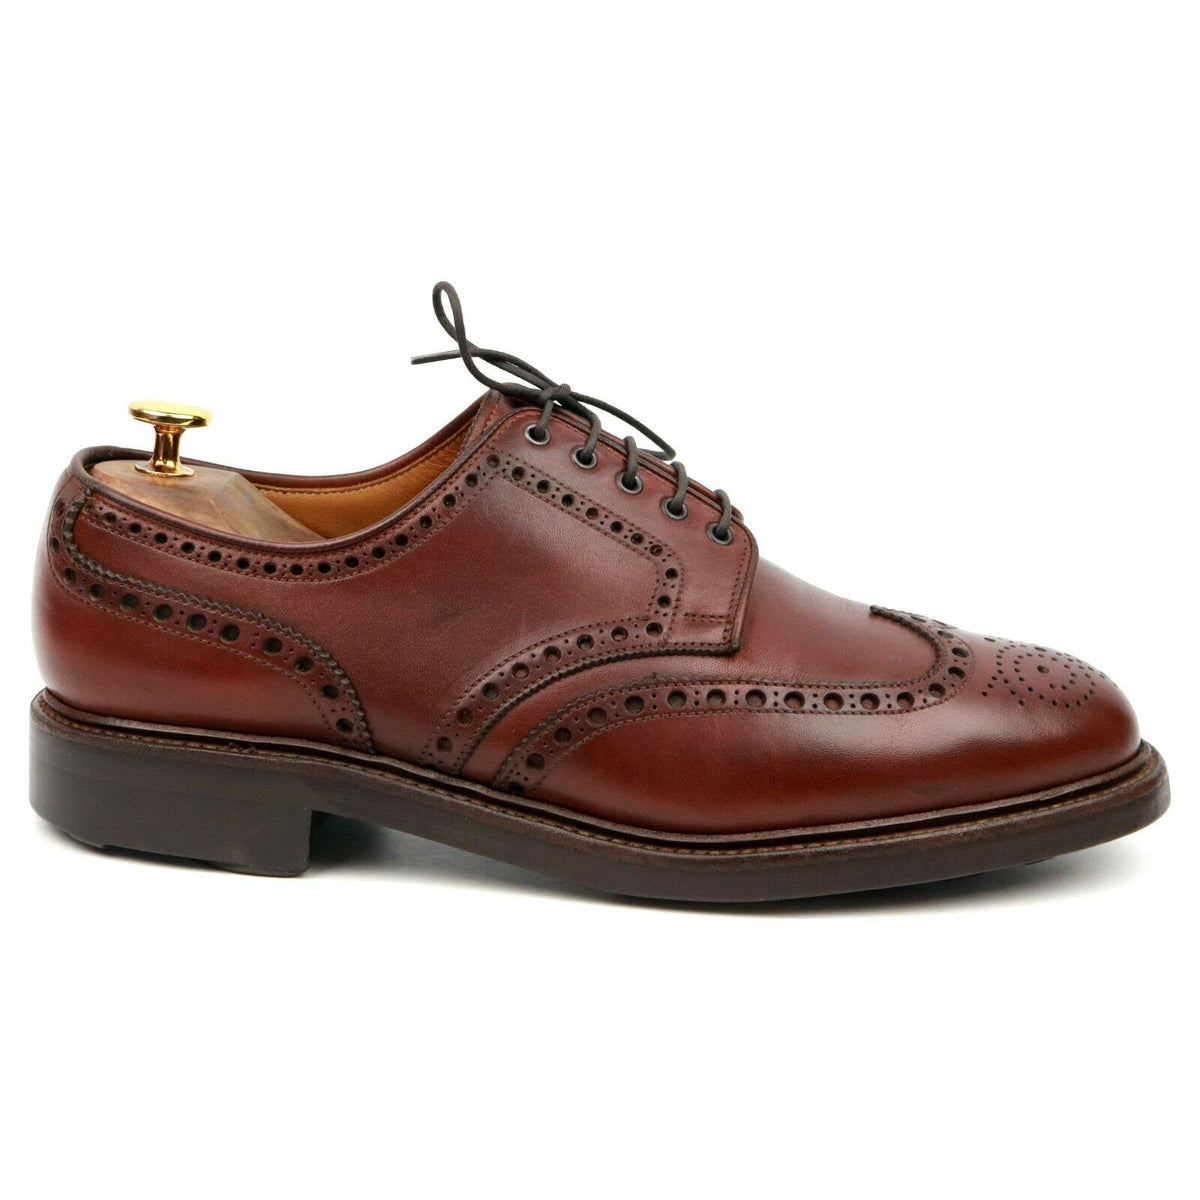 Crockett & Jones 'Warwick' Brown Leather Derby Brogues UK 8.5 F